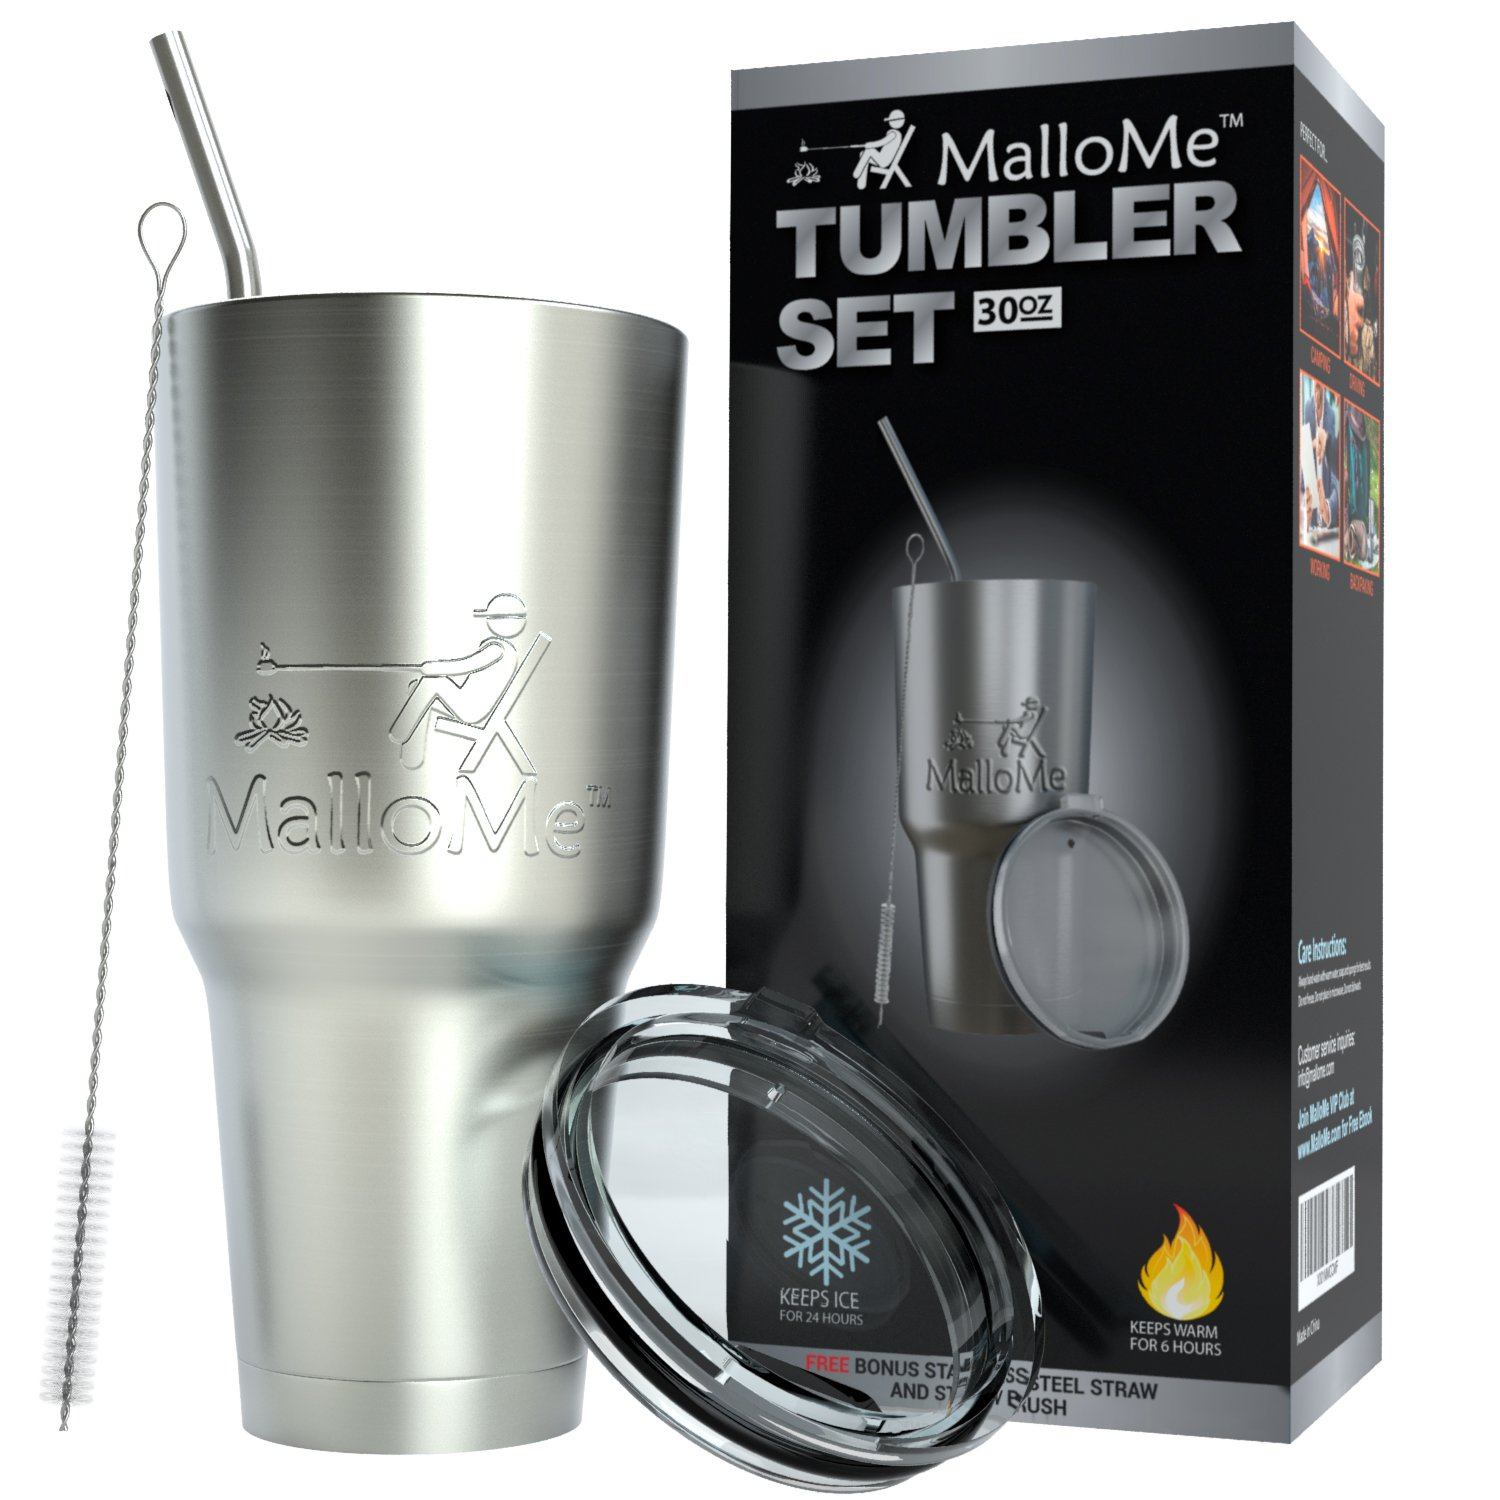 MalloMe Tumbler 30 oz. Double Wall Stainless Steel Vacuum Insulated - Travel Mug [Crystal Clear Lid] Water Coffee Cup [Straw Included] For Home,Office,School - Works Great for Ice Drink, Hot Beverage by MalloMe (Image #1)